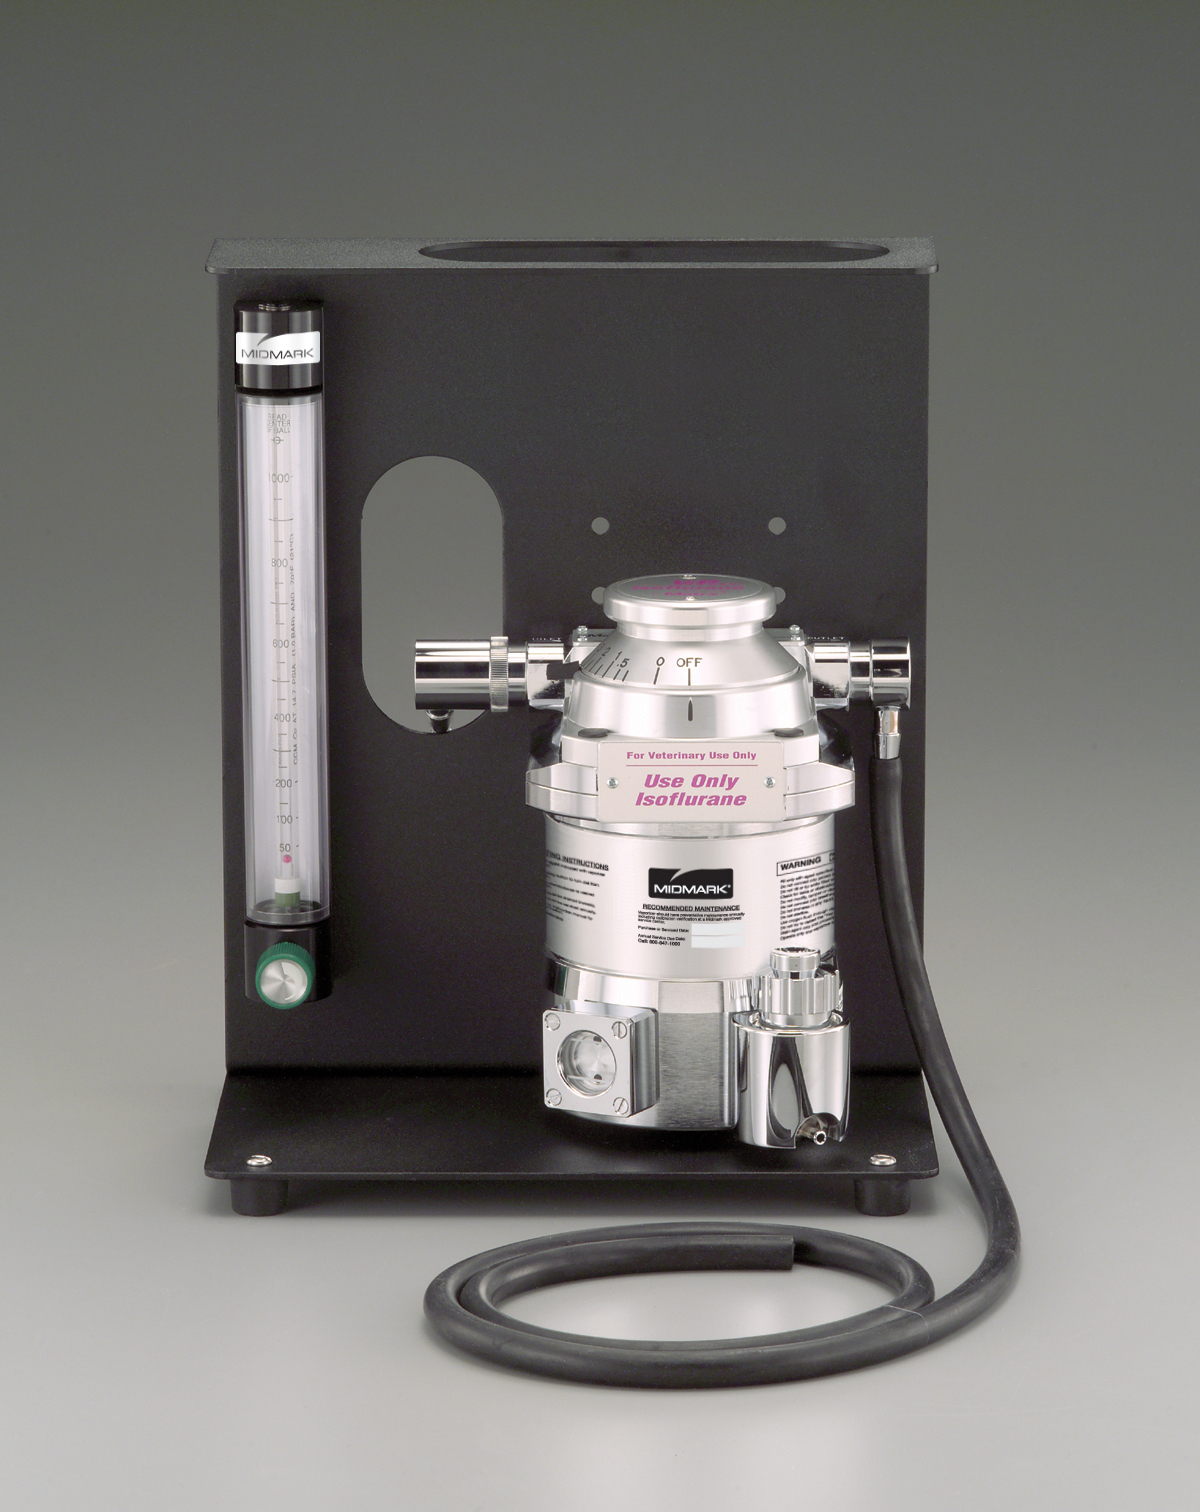 ANESTHETIC DELIVERY SYSTEMS, NON-REBREATHING, MATRX VMR TABLETOP W/ISOFLURANE WELL-FILL VAPORIZER